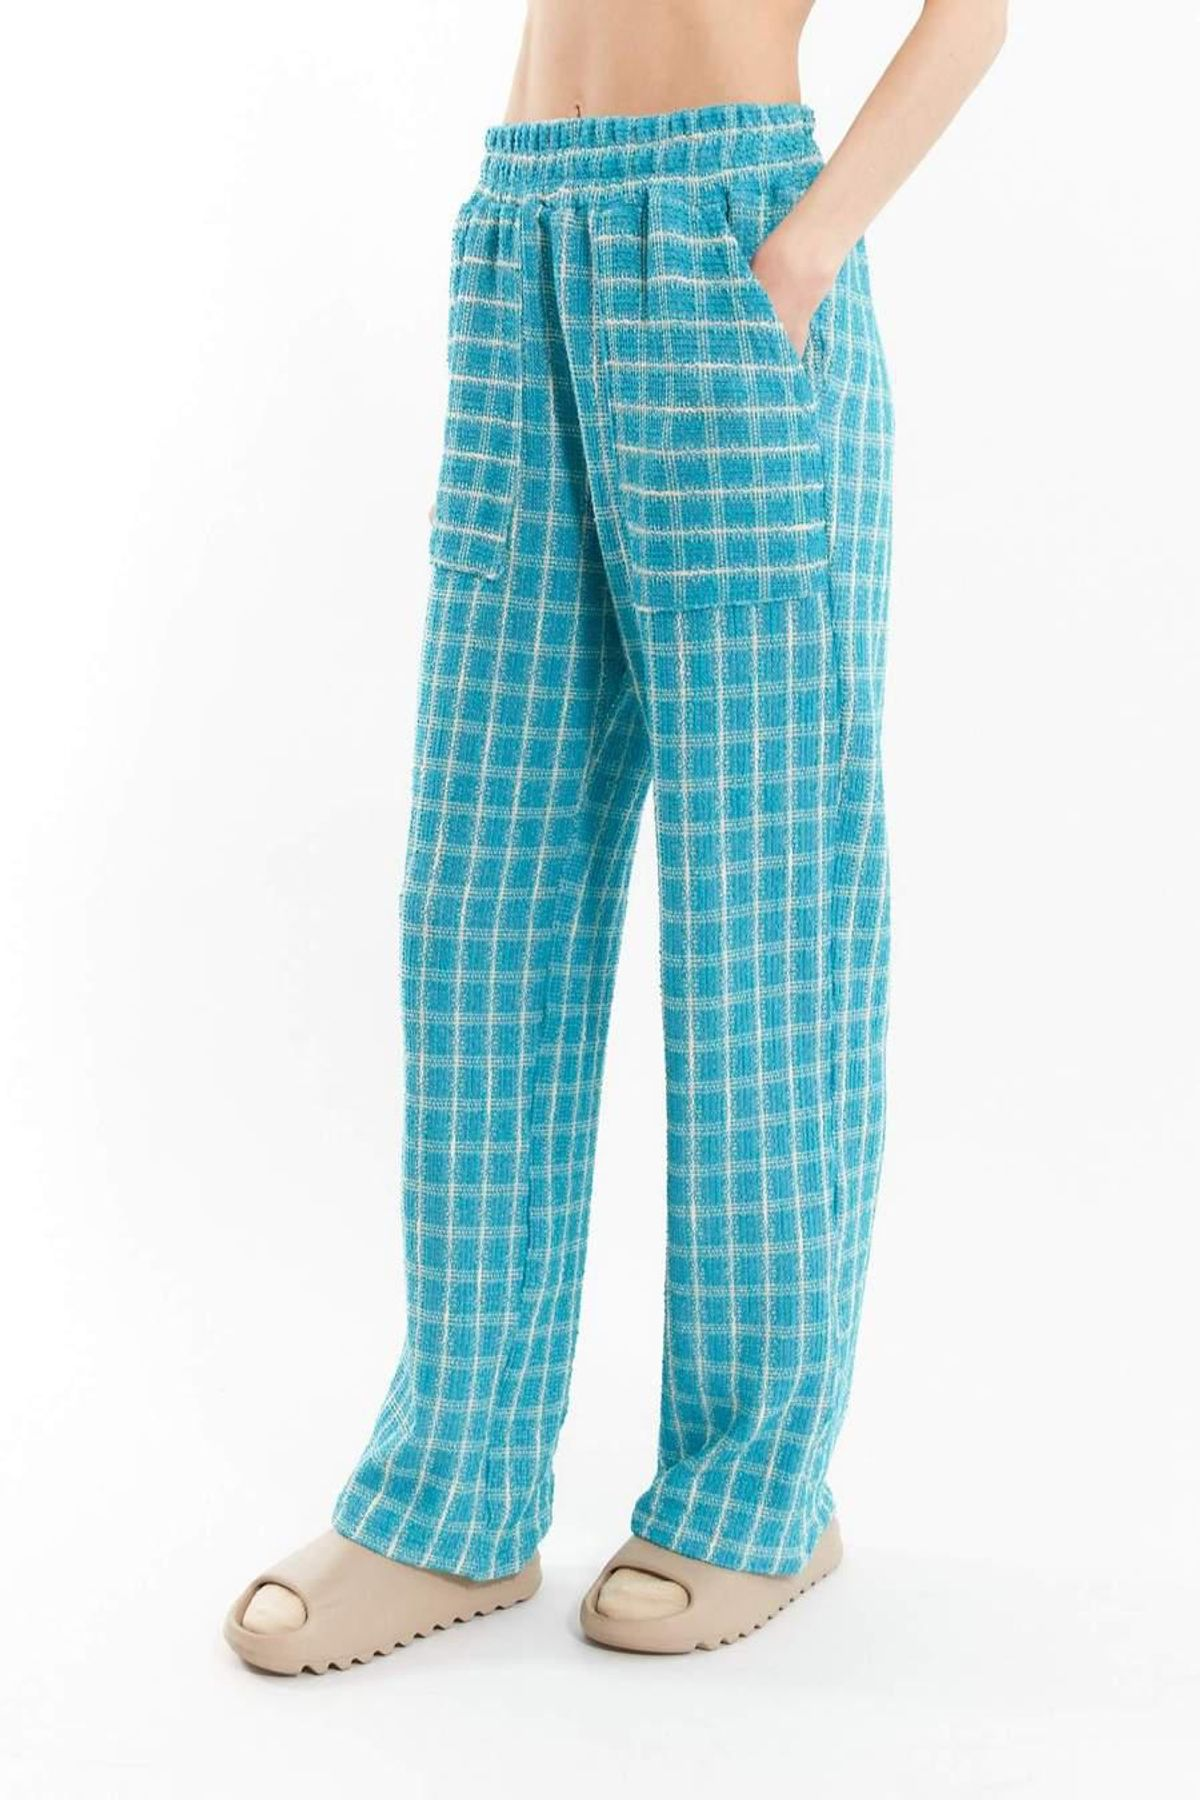 division turquoise lounge pants